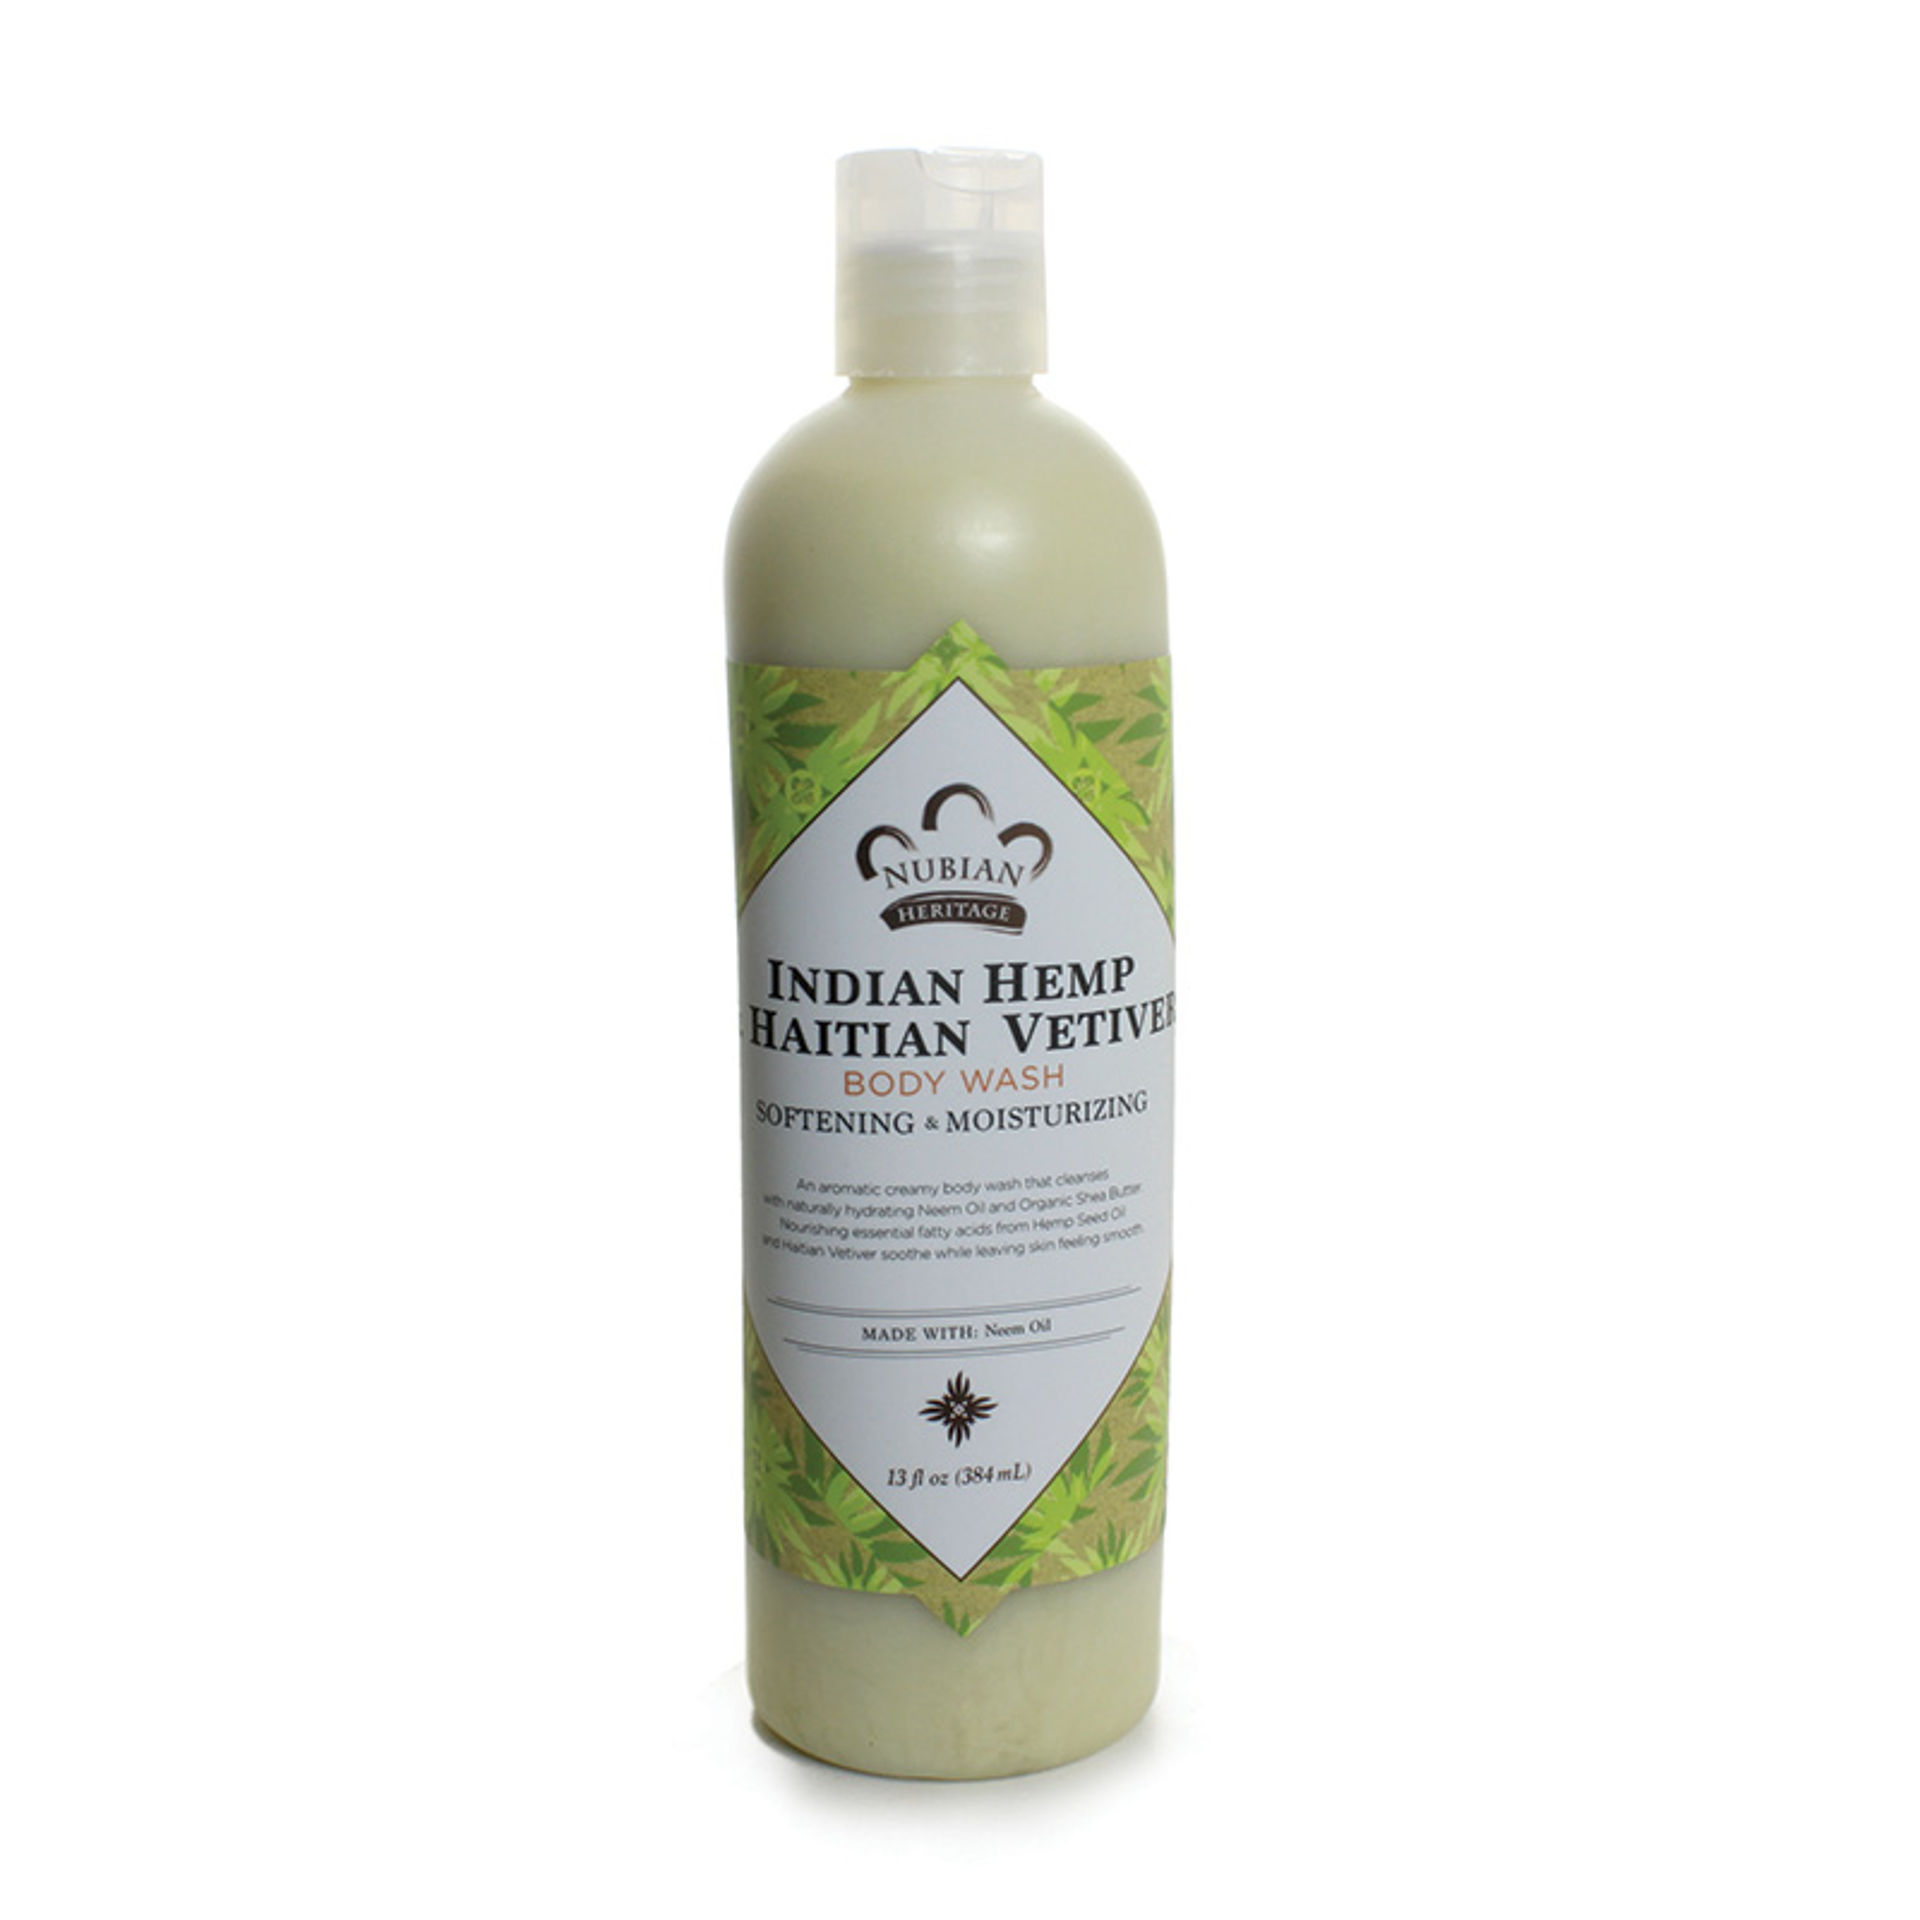 Picture of Indian Hemp & Vetiver Body Wash - 13 oz.